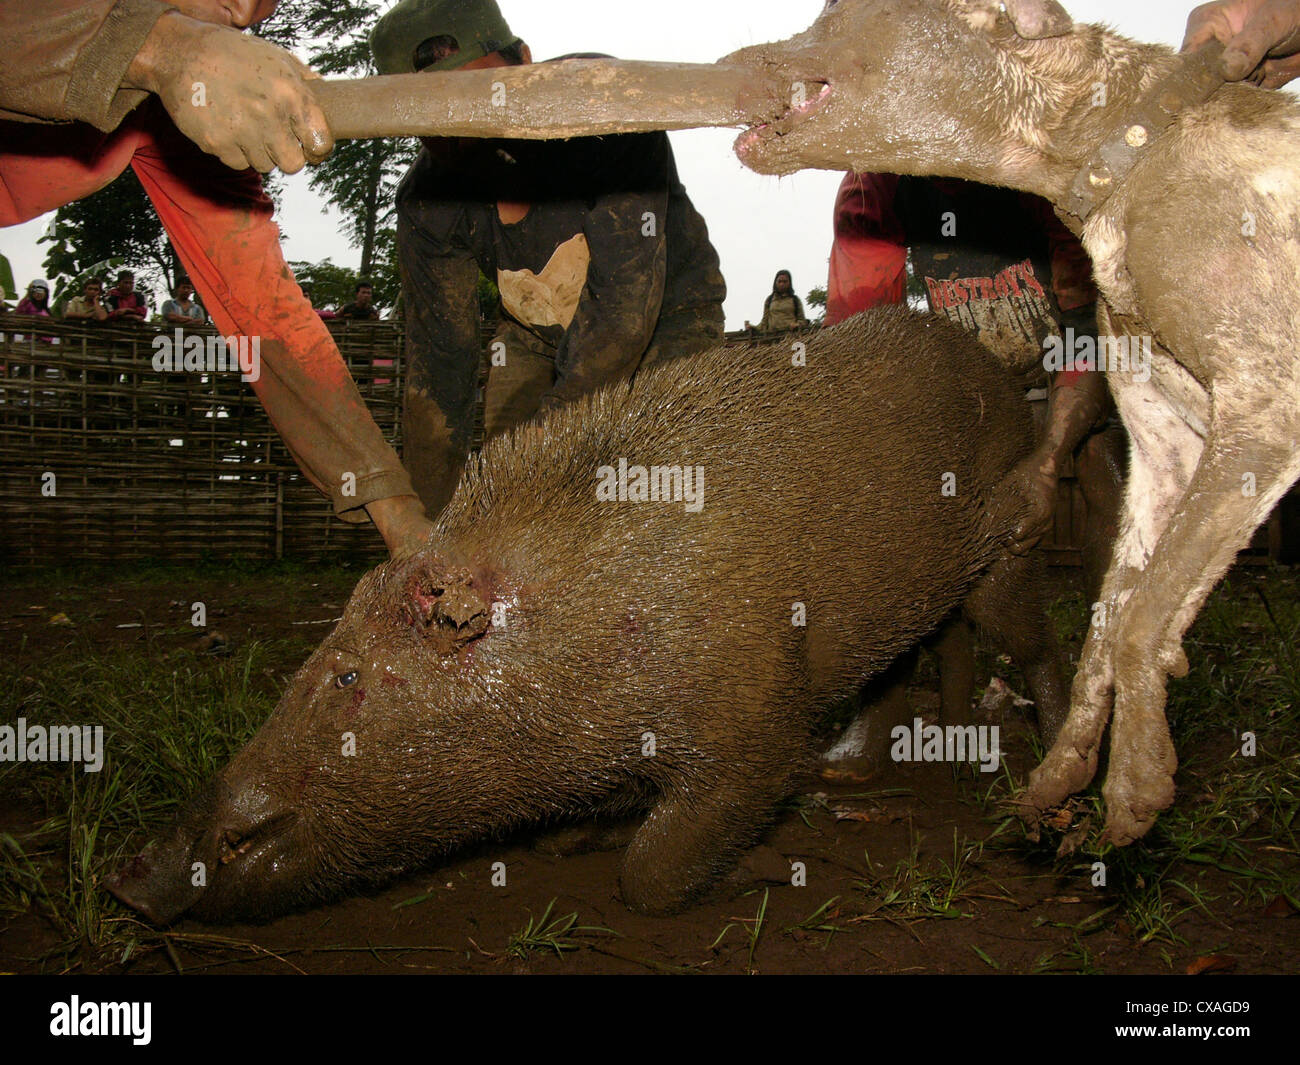 Owners encourage their attack dog to maul a wild pig during a legal boar-baiting contest in Java, Indonesia. - Stock Image